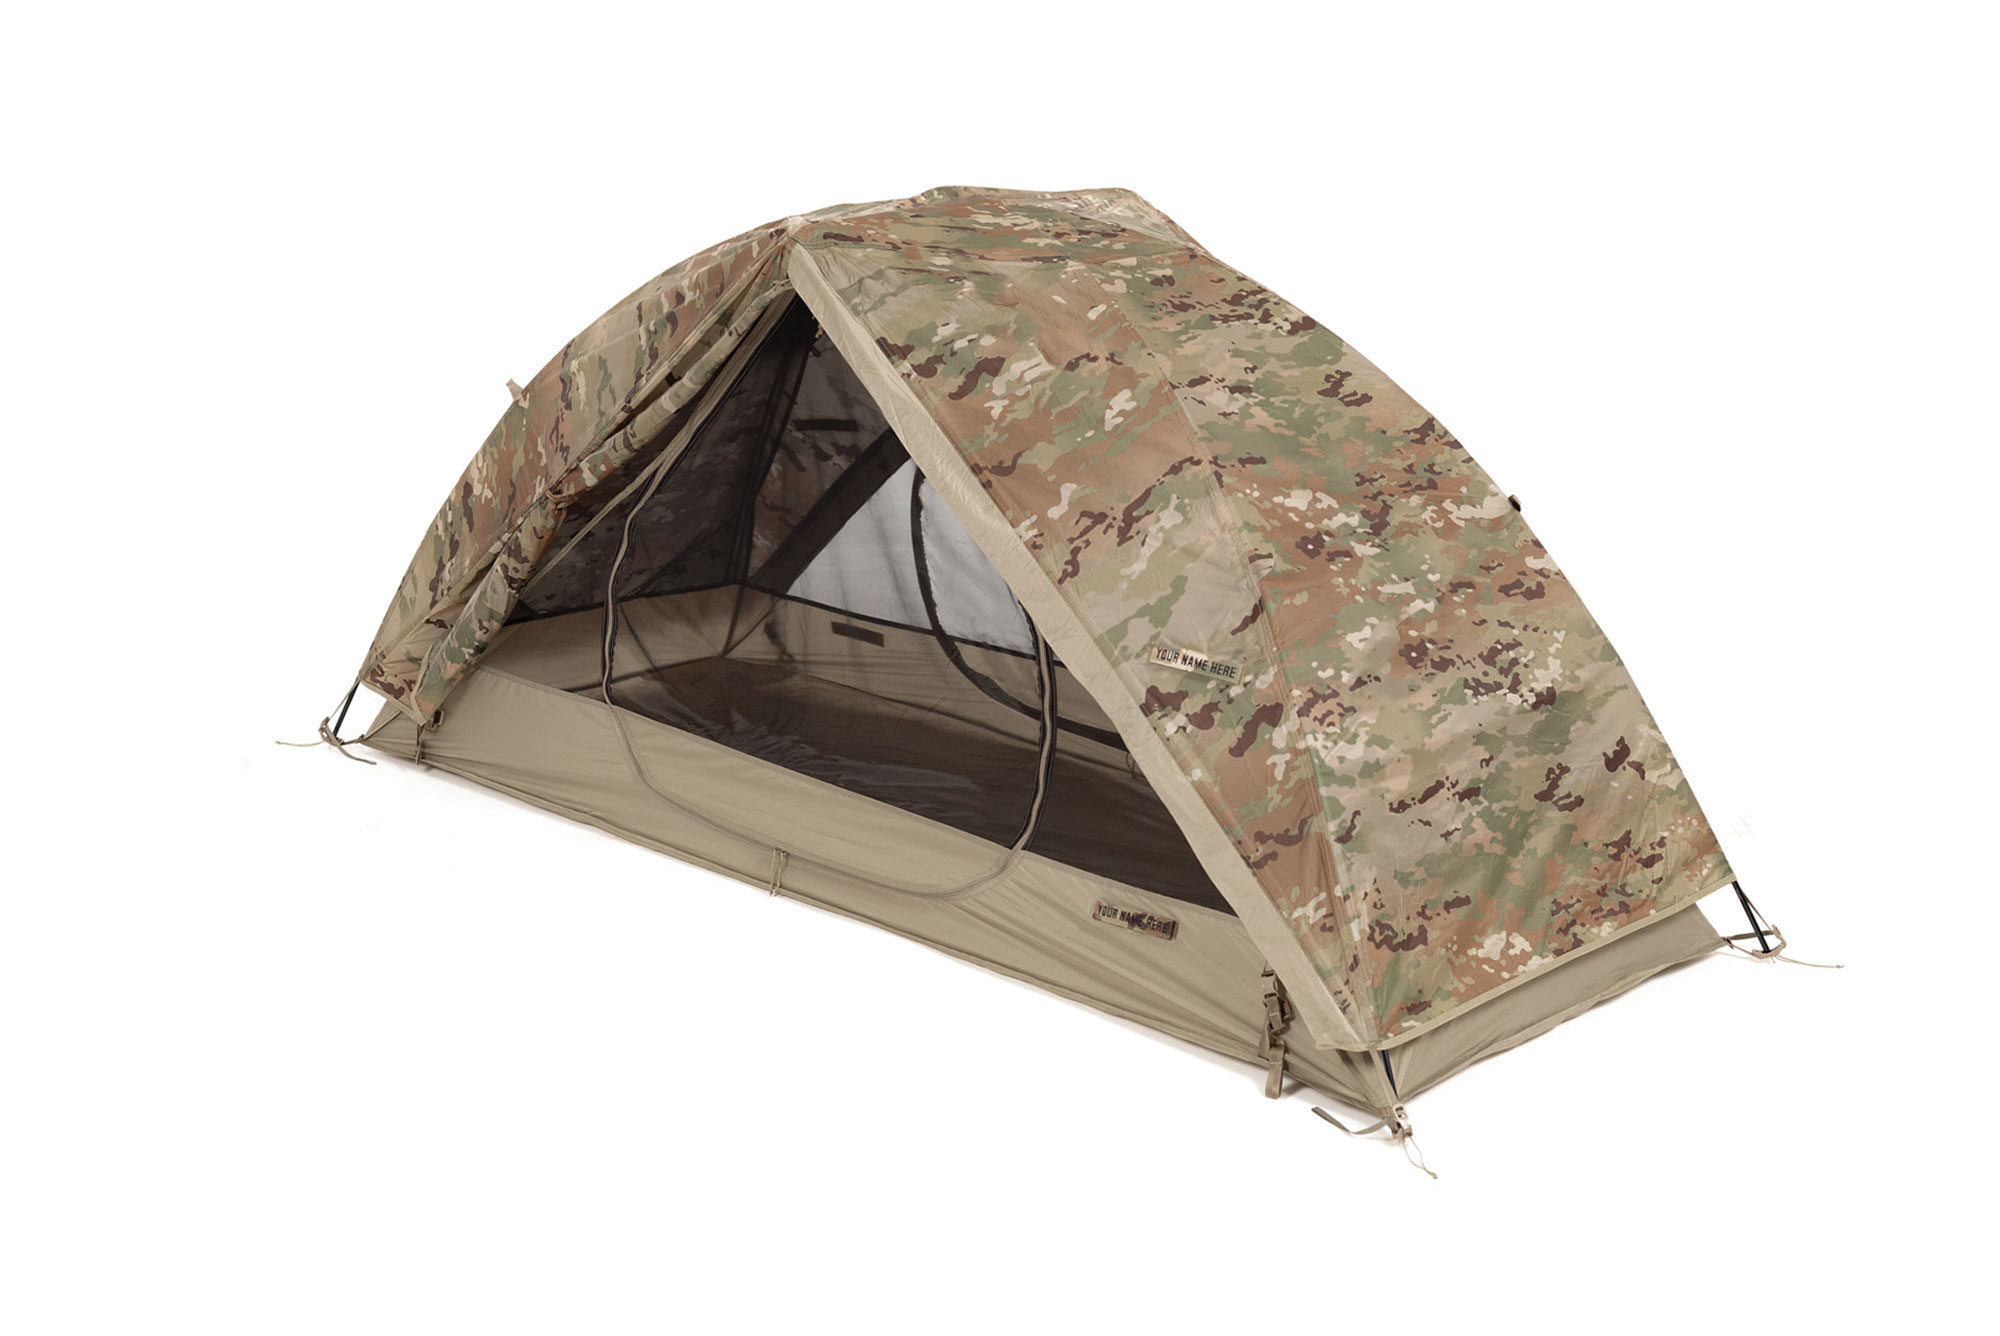 Litefighter 1 Individual Tent Shelter System Olive Drab OD Lightweight Portable